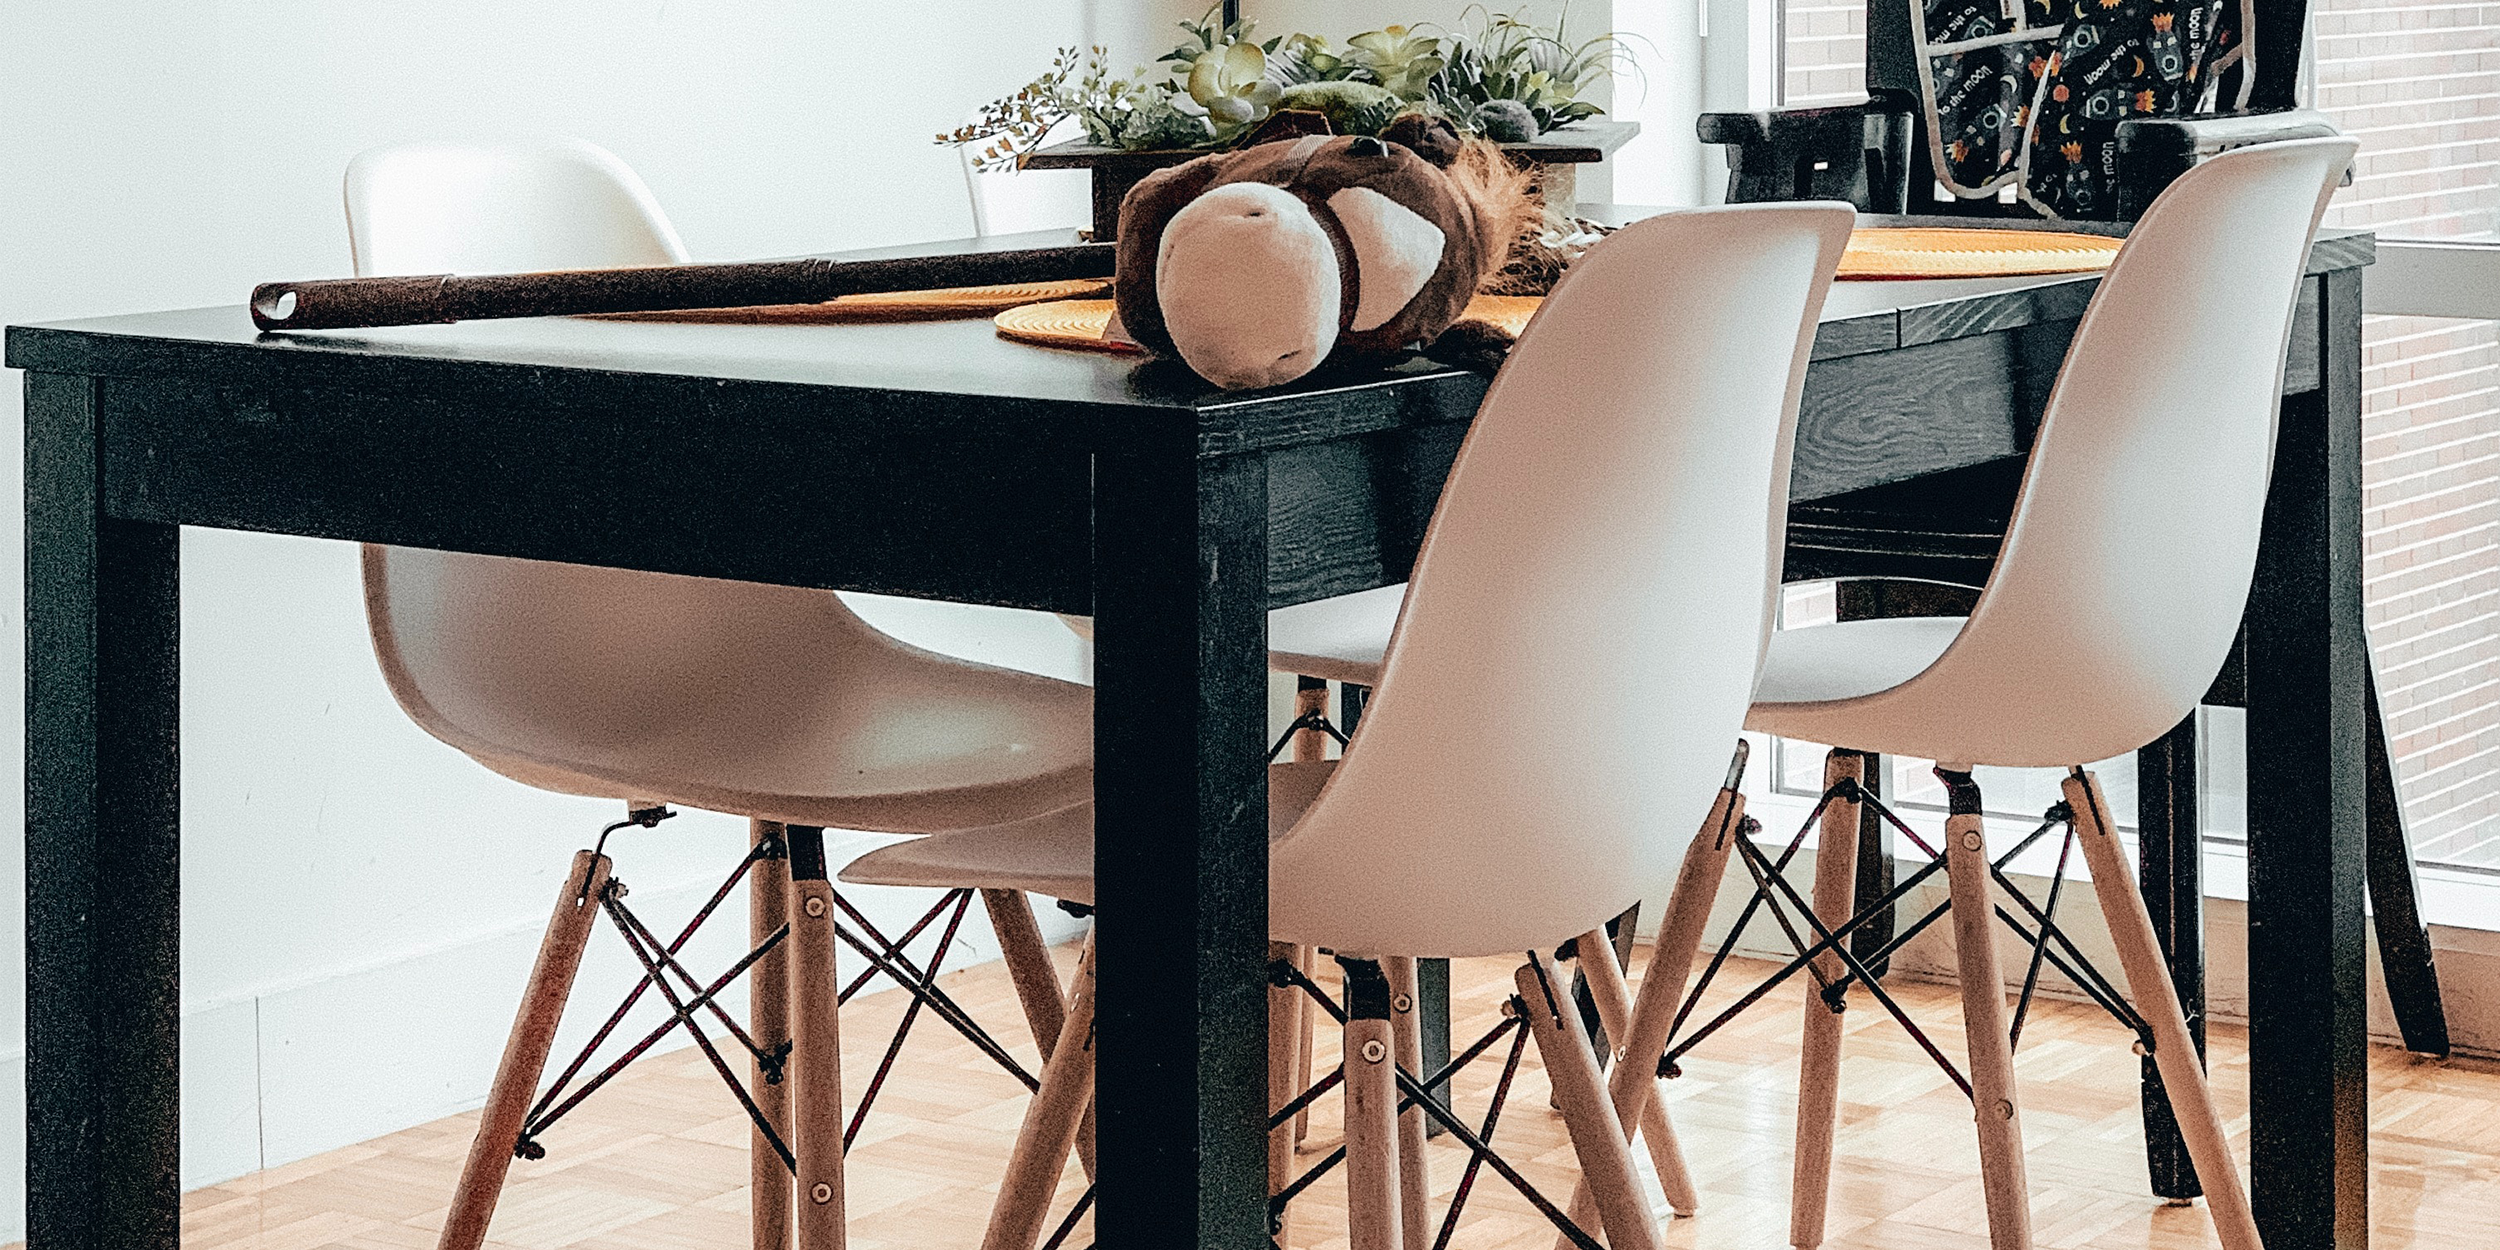 Eames DSW Chairs in a Dining Room